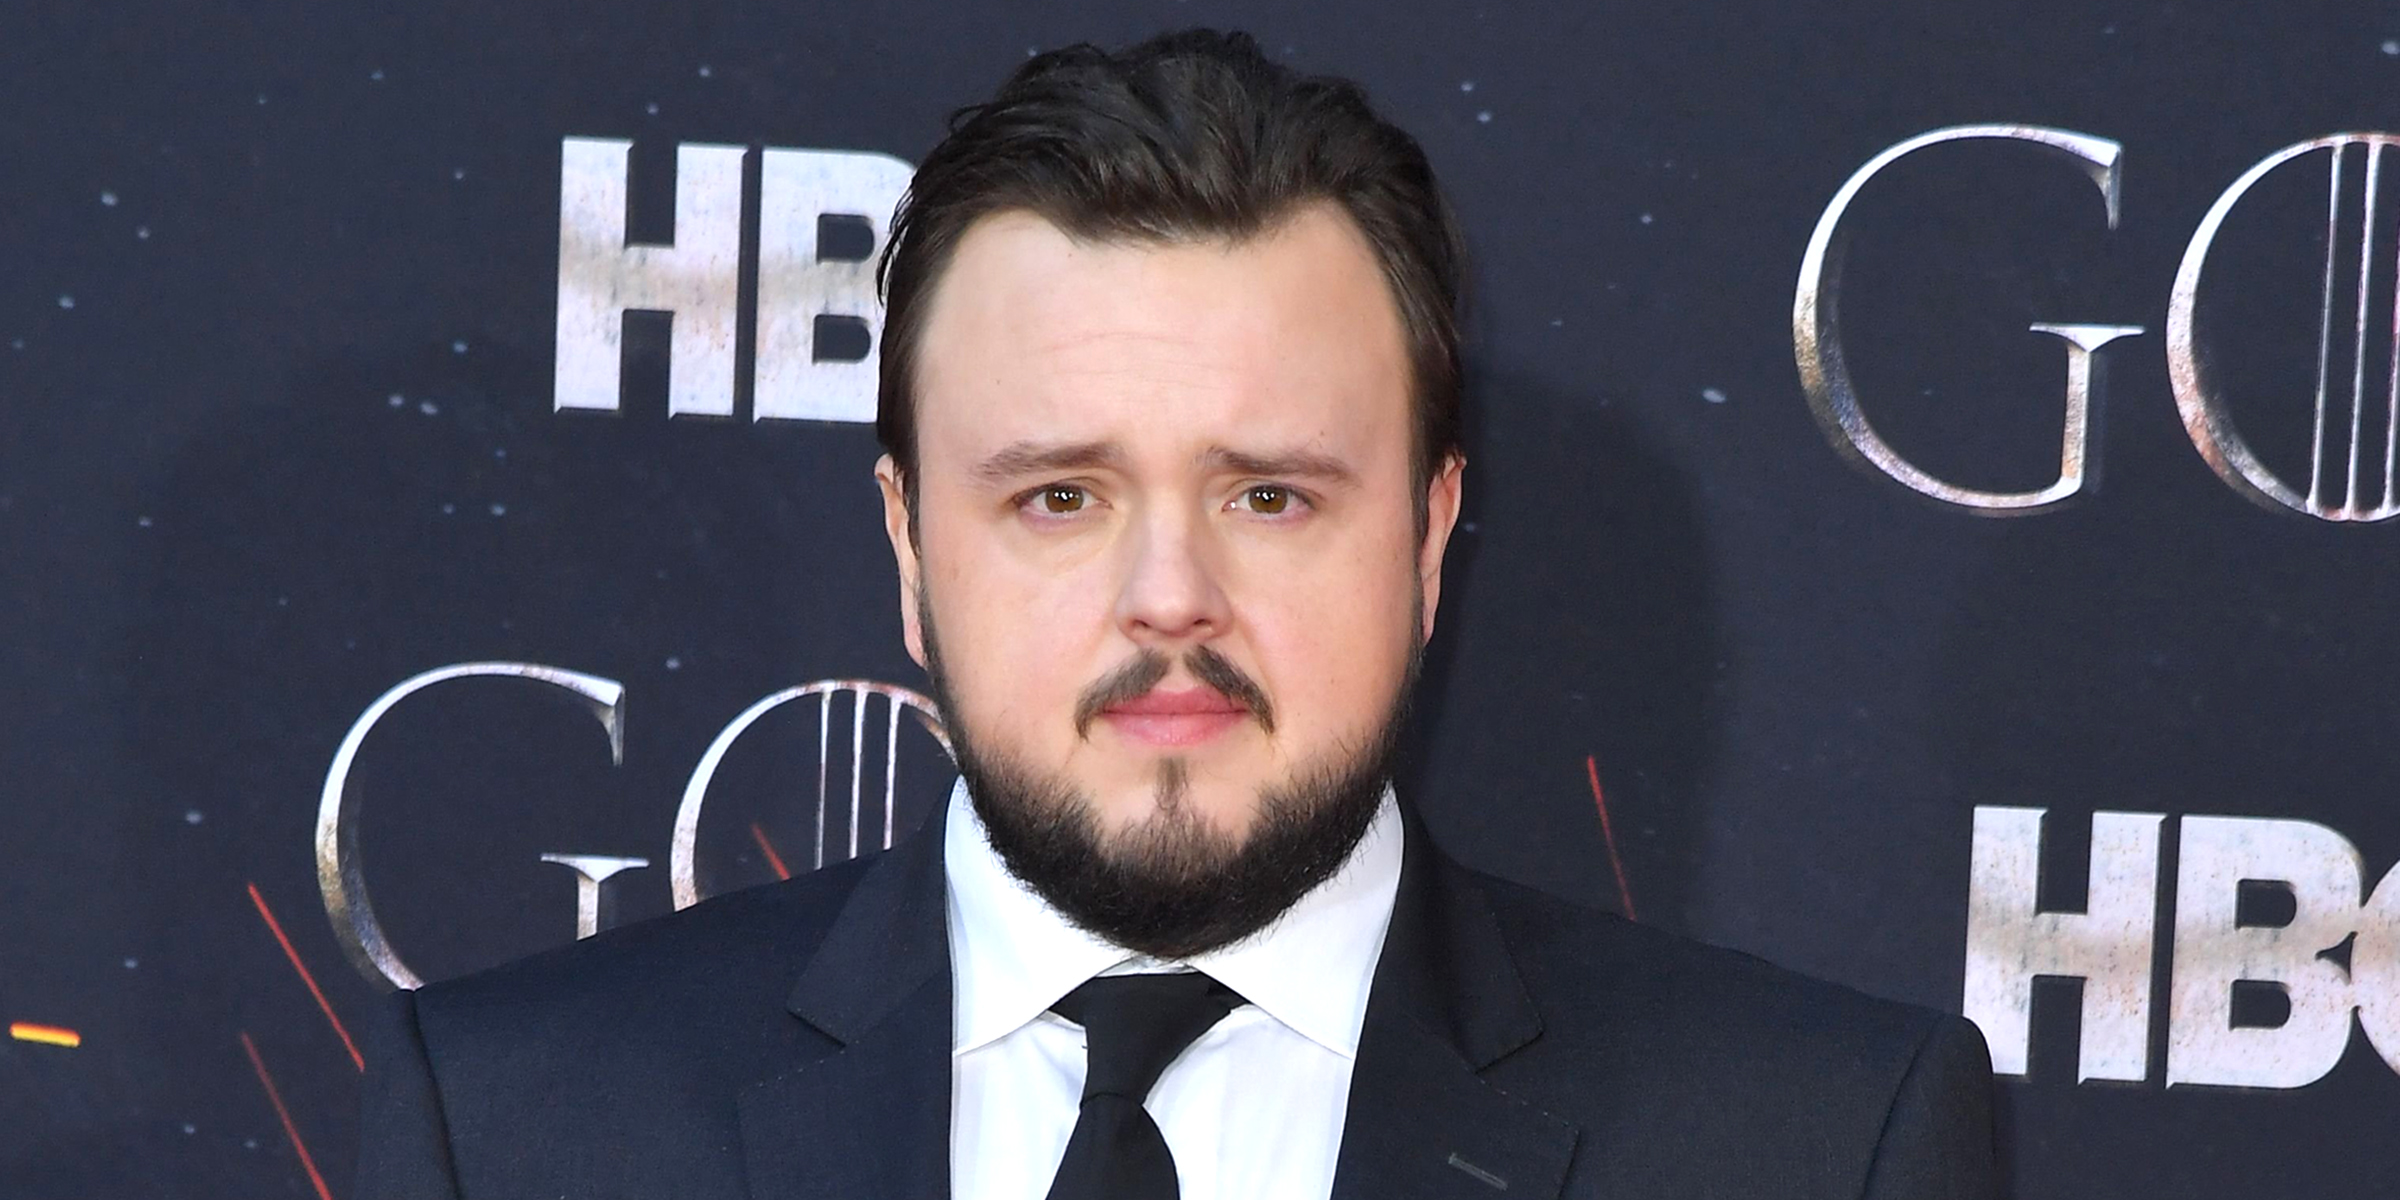 Game Of Thrones John Bradley Who Plays Samwell Tarly Opens Up